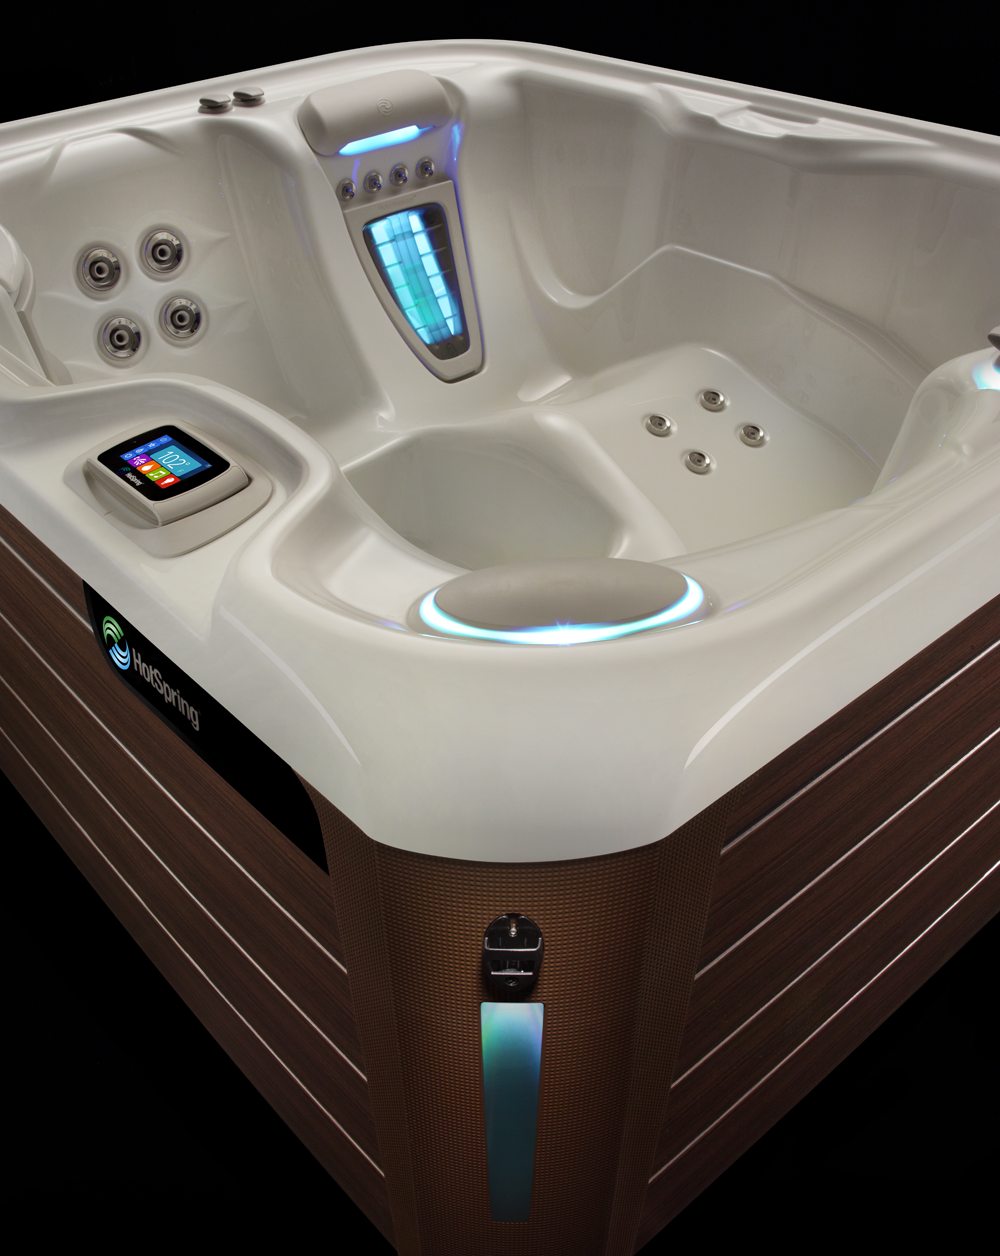 Should I Buy a Used Hot Tub? | spas | Pinterest | Hot tubs, Tubs and ...